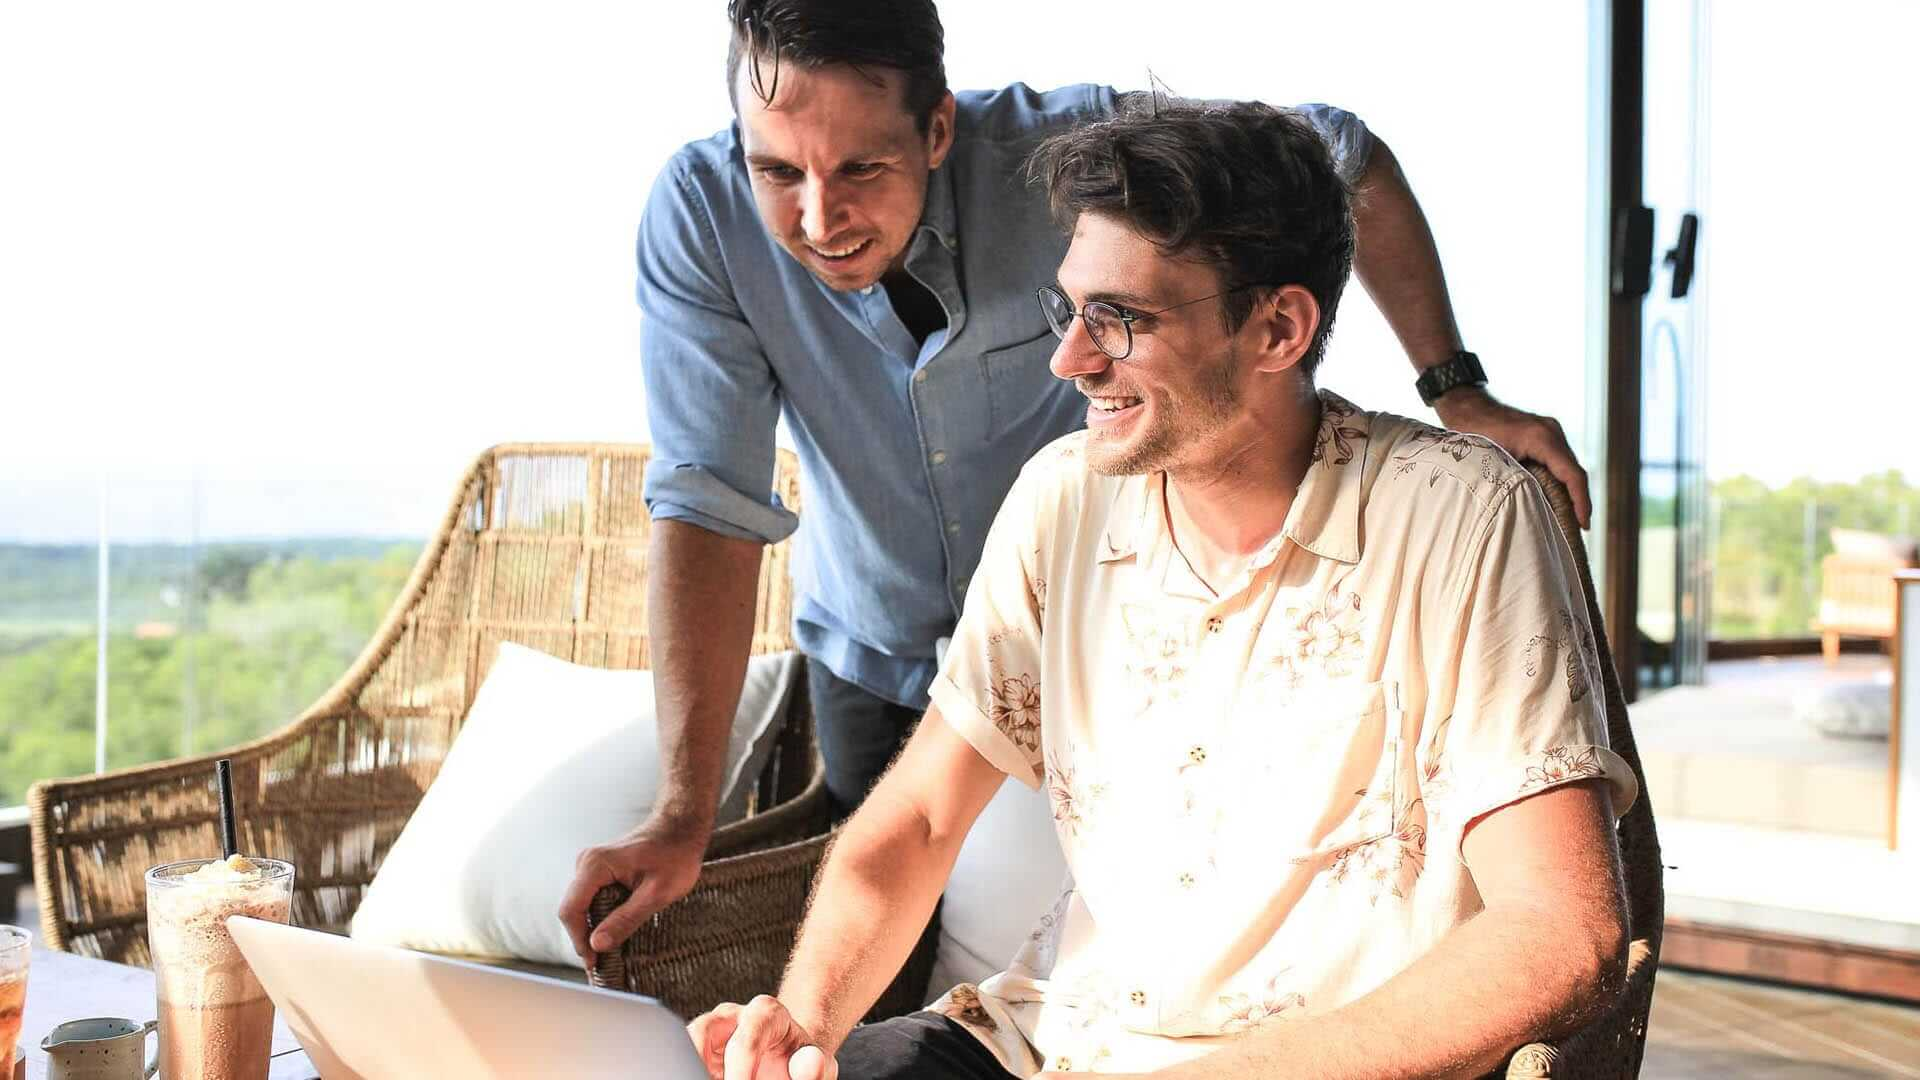 Two men are discussing while looking at a laptop